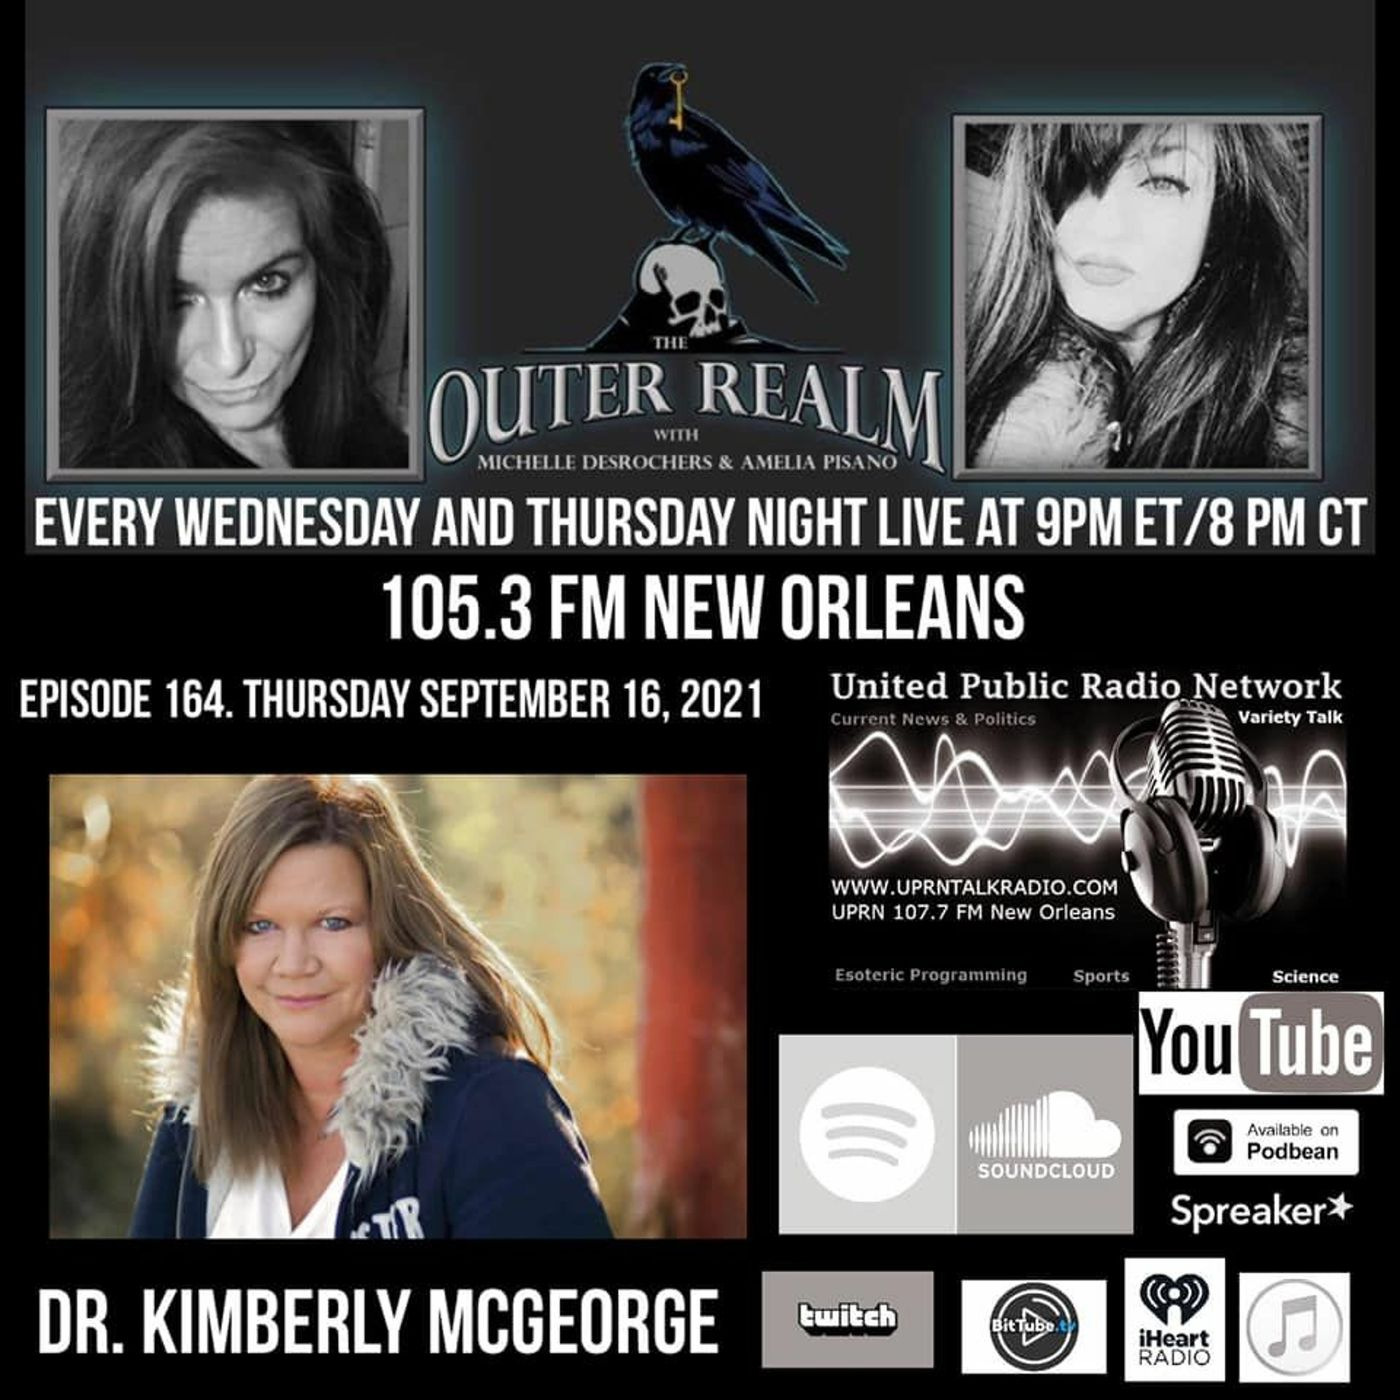 The Outer Realm With Michelle Desrochers And Amelia Pisano Special Guest Dr. Kimberly McGeorge.